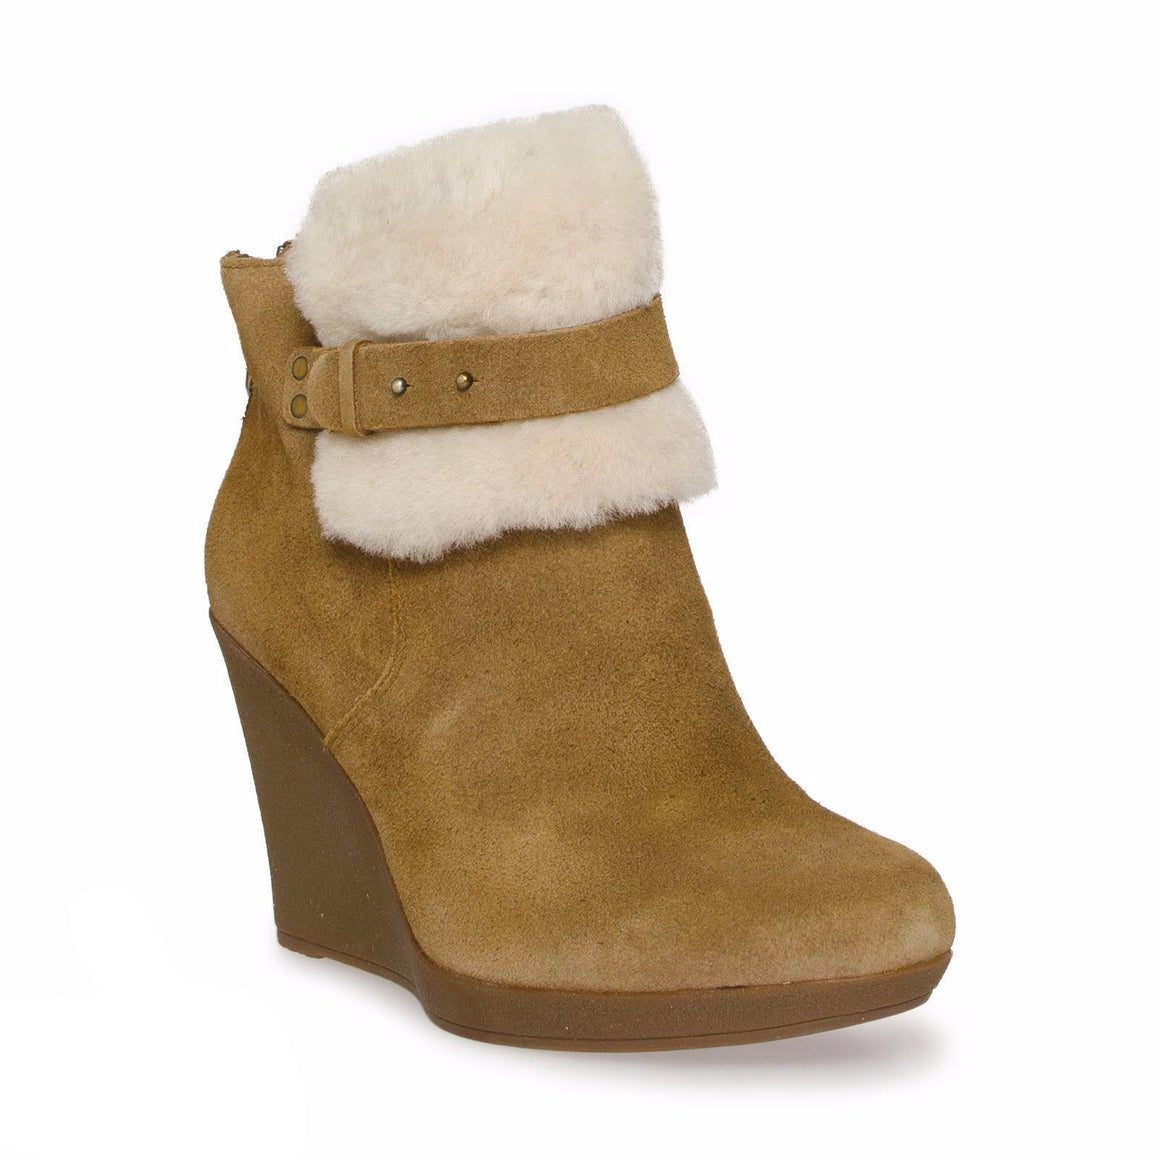 UGG ANTONIA CHESTNUT ANKLE BOOTS